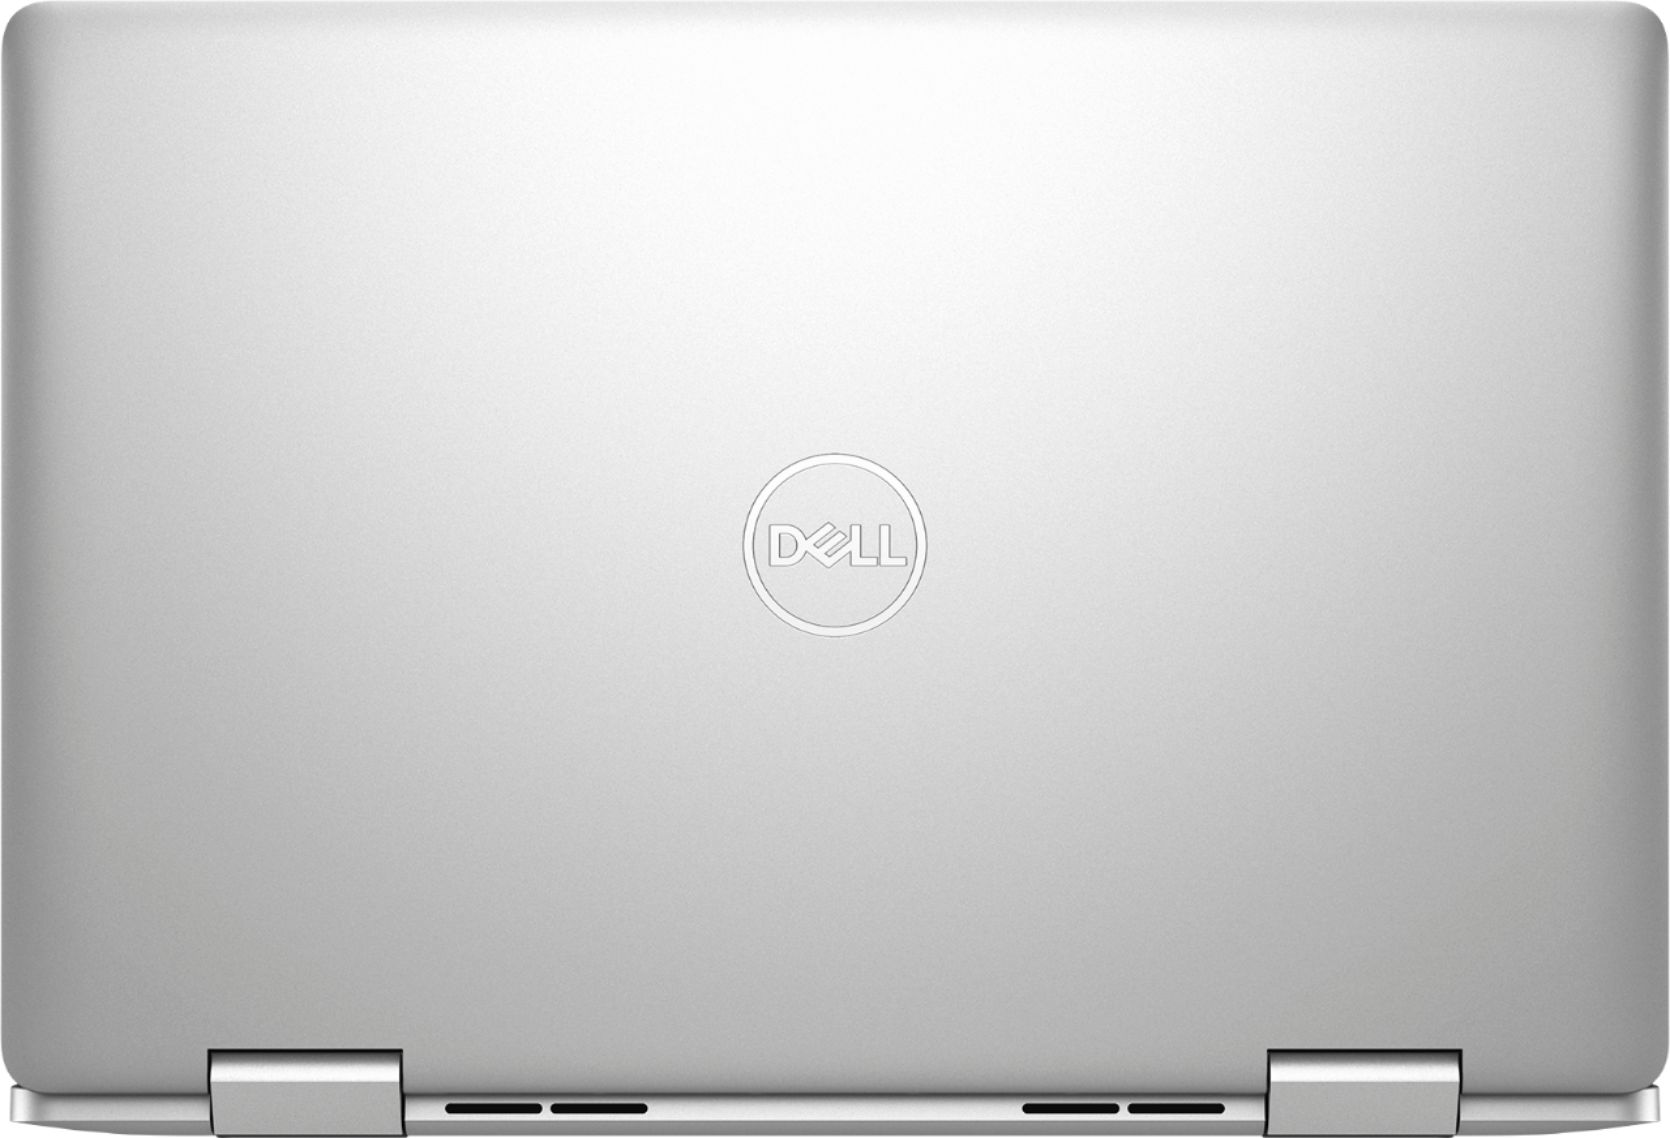 """Alt View Zoom 3. Dell - Inspiron 2-in-1 17.3"""" Geek Squad Certified Refurbished Touch-Screen Laptop - Intel Core i7 - 16GB Memory - 512GB SSD - Silver."""